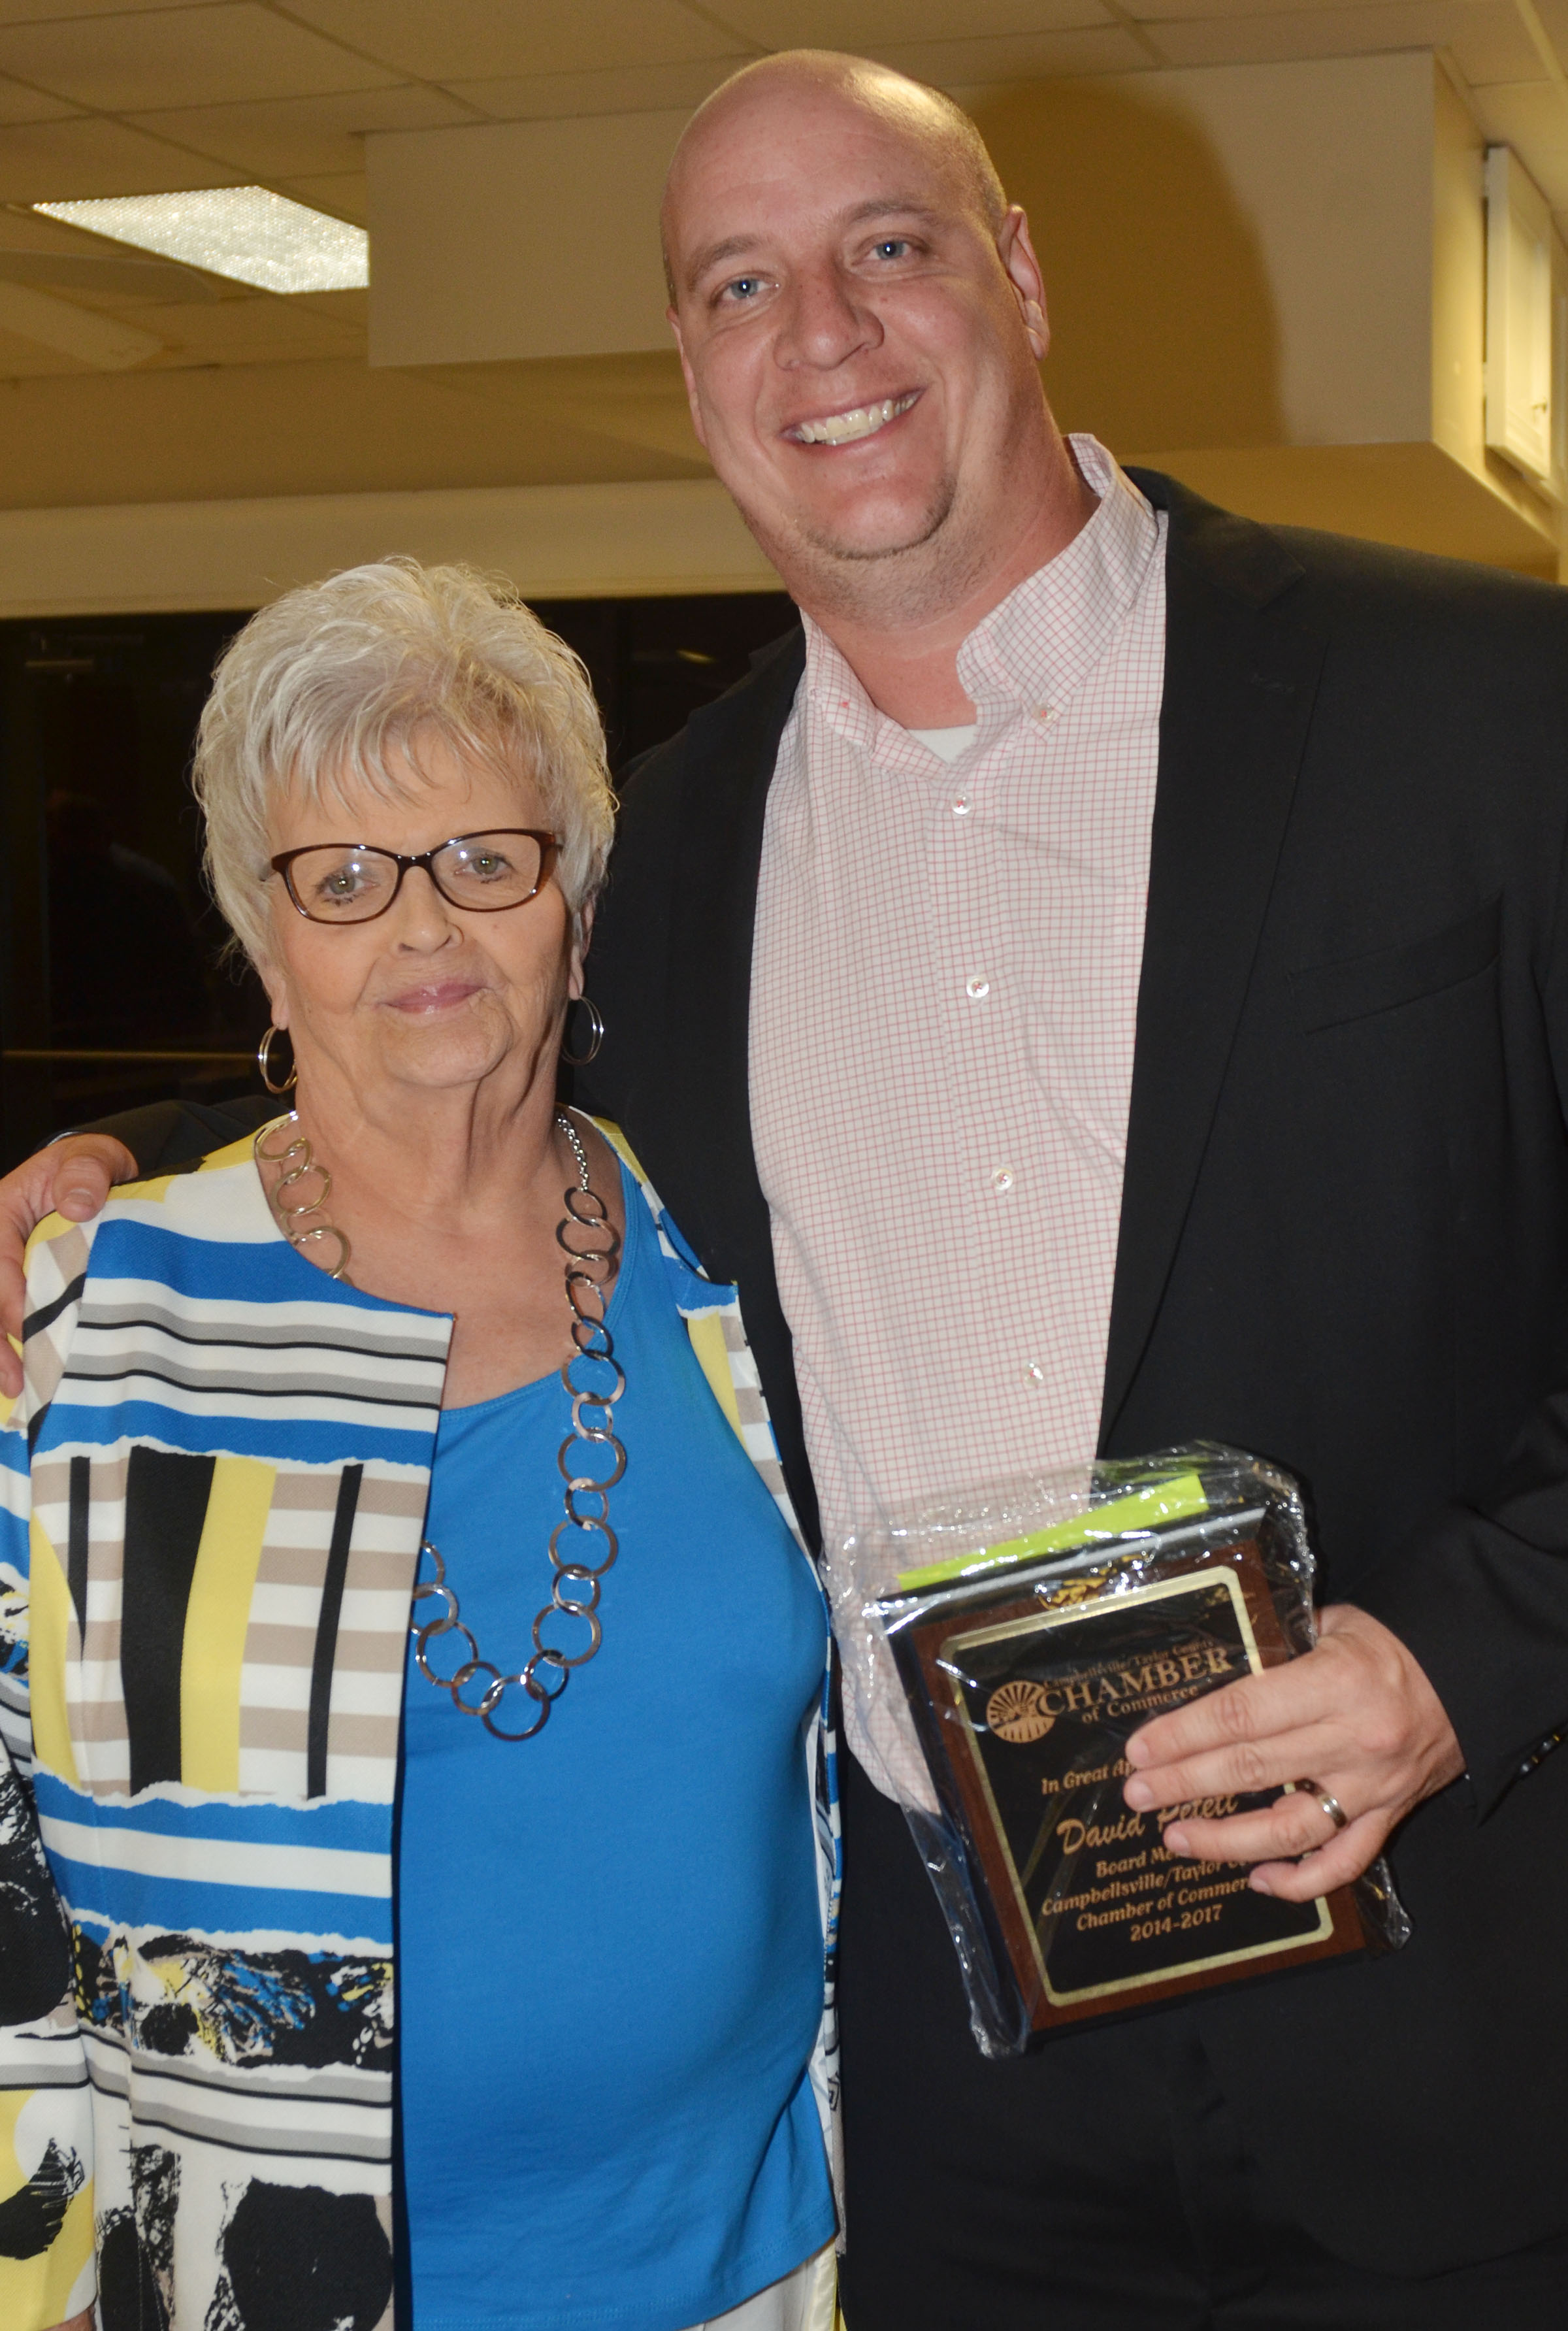 David Petett, who is transportation director and director of district programs at Campbellsville Independent Schools, was honored for serving on the Chamber Board of Directors for three years. He is pictured with Chamber Director Judy Cox.